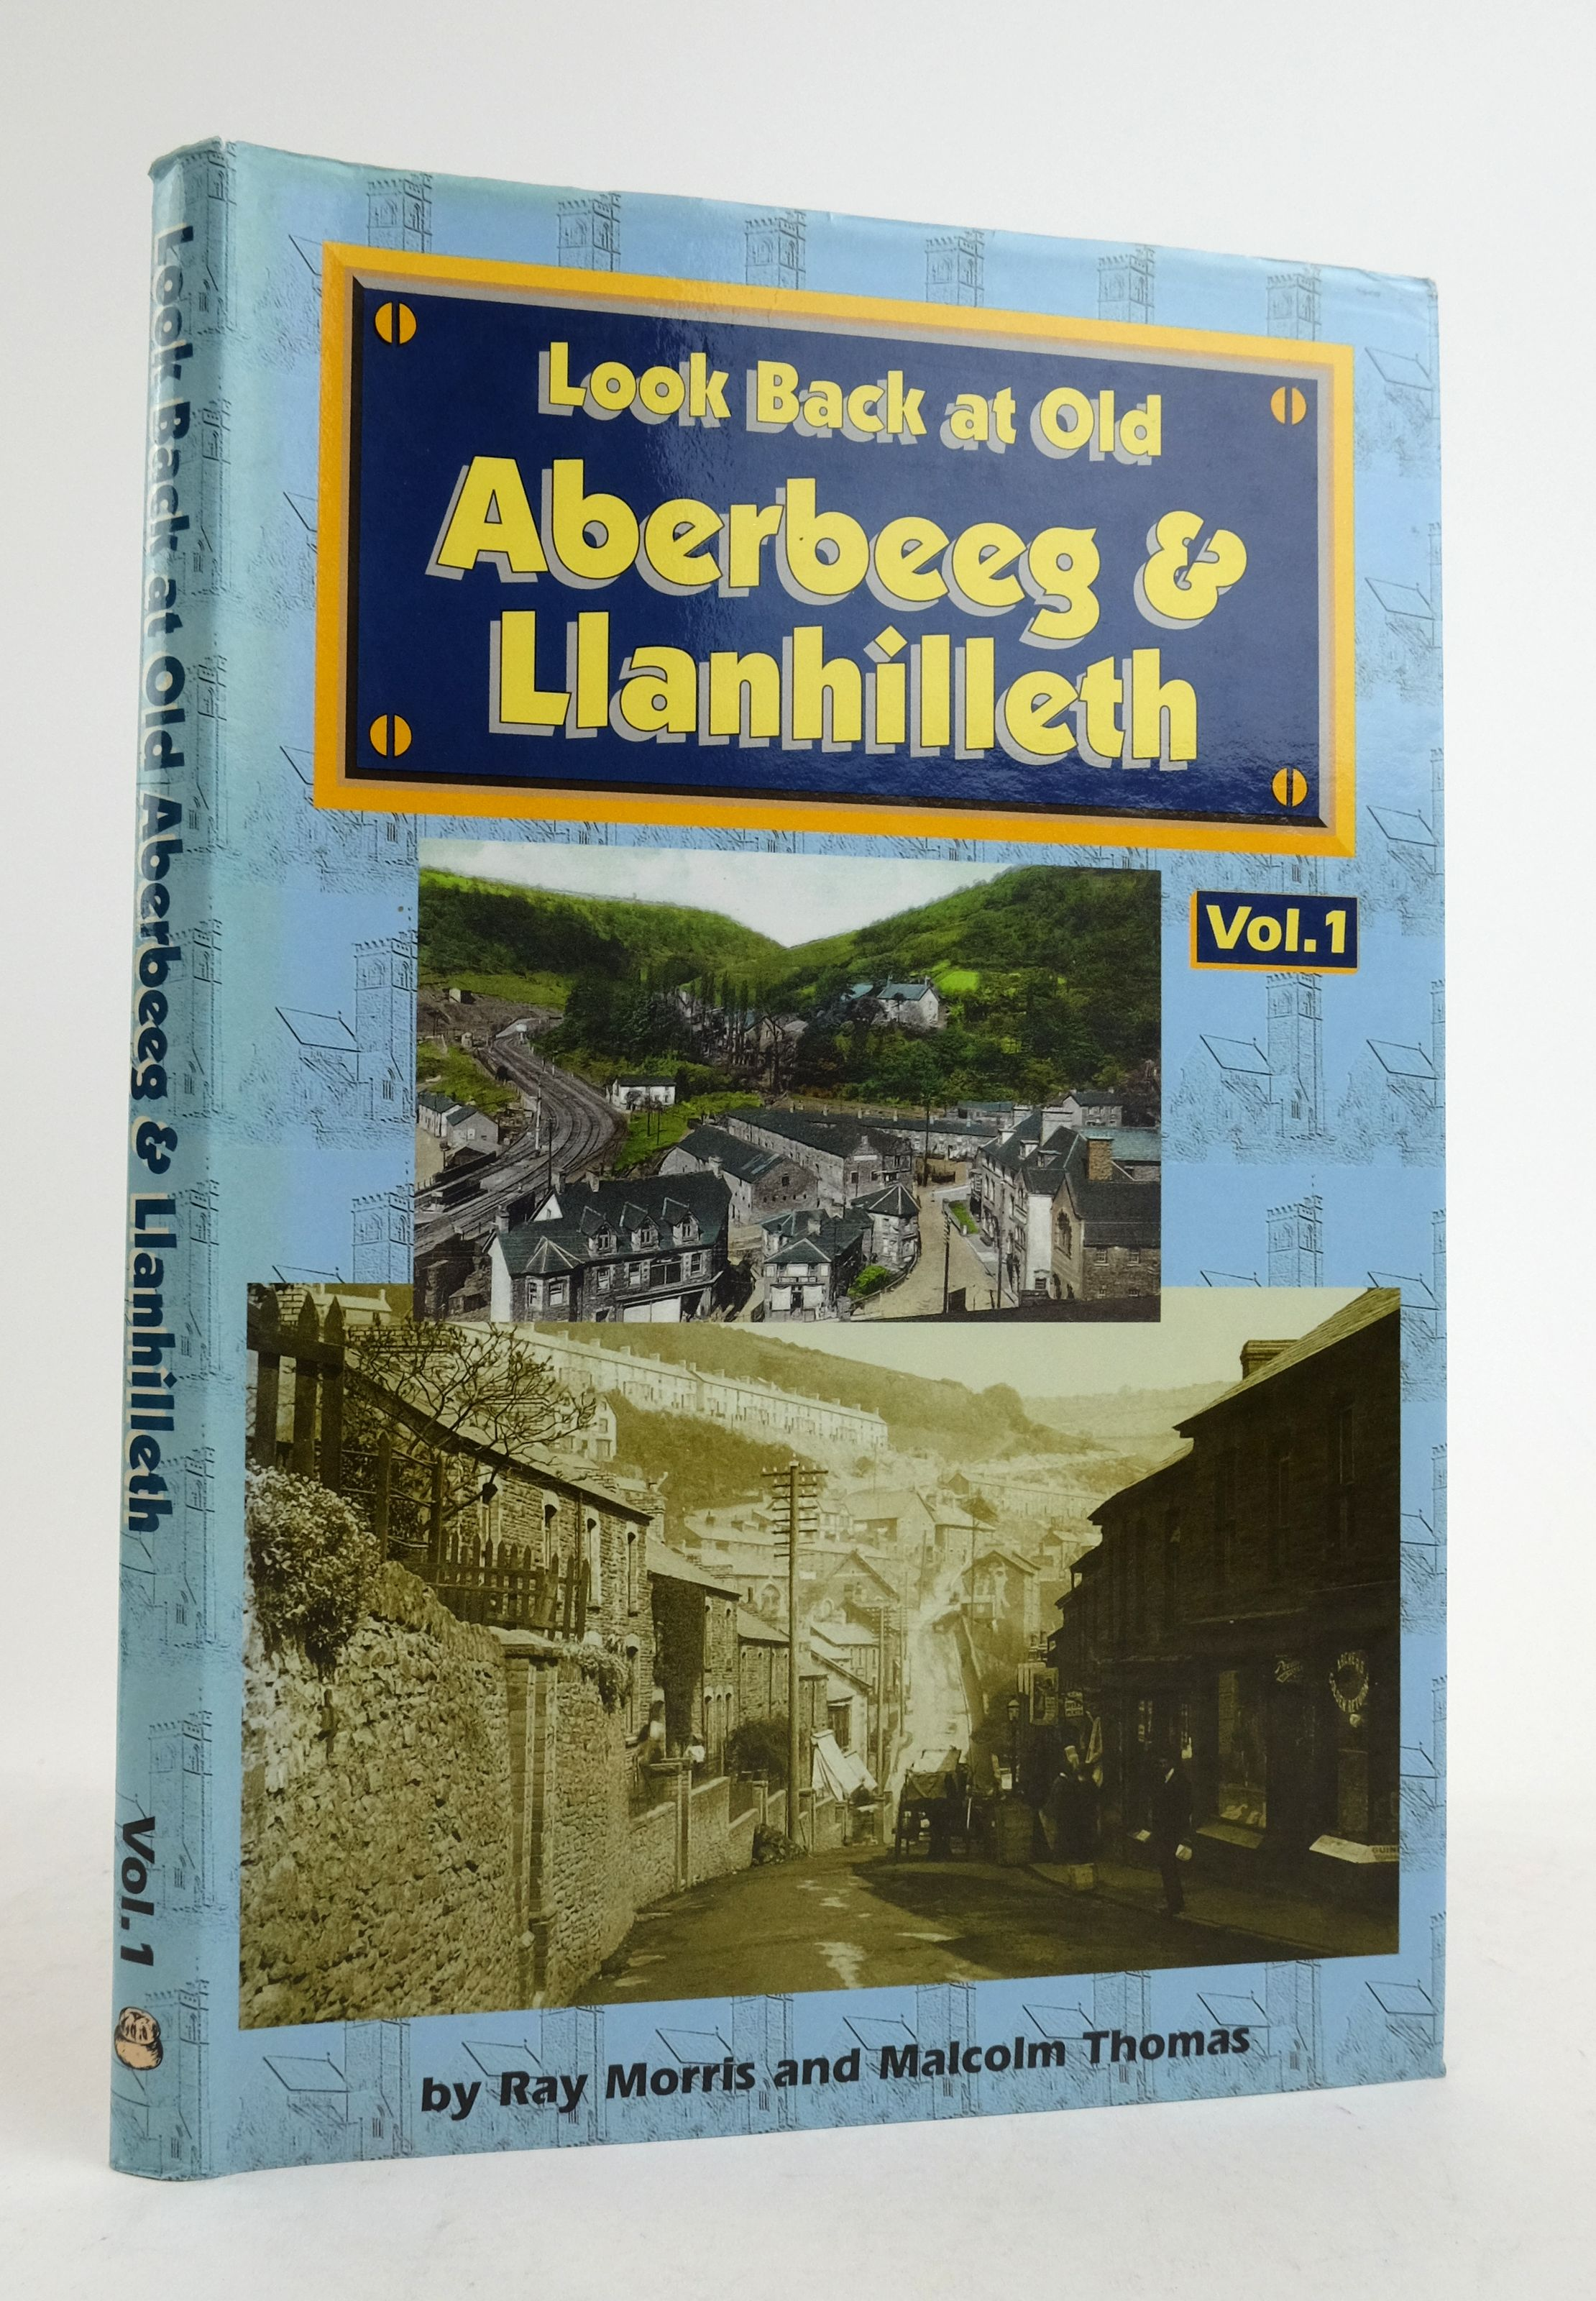 Photo of LOOK BACK AT OLD ABERBEEG & LLANHILLETH VOLUME 1 written by Morris, Ray Thomas, Malcolm published by Old Bakehouse Publications (STOCK CODE: 1822465)  for sale by Stella & Rose's Books